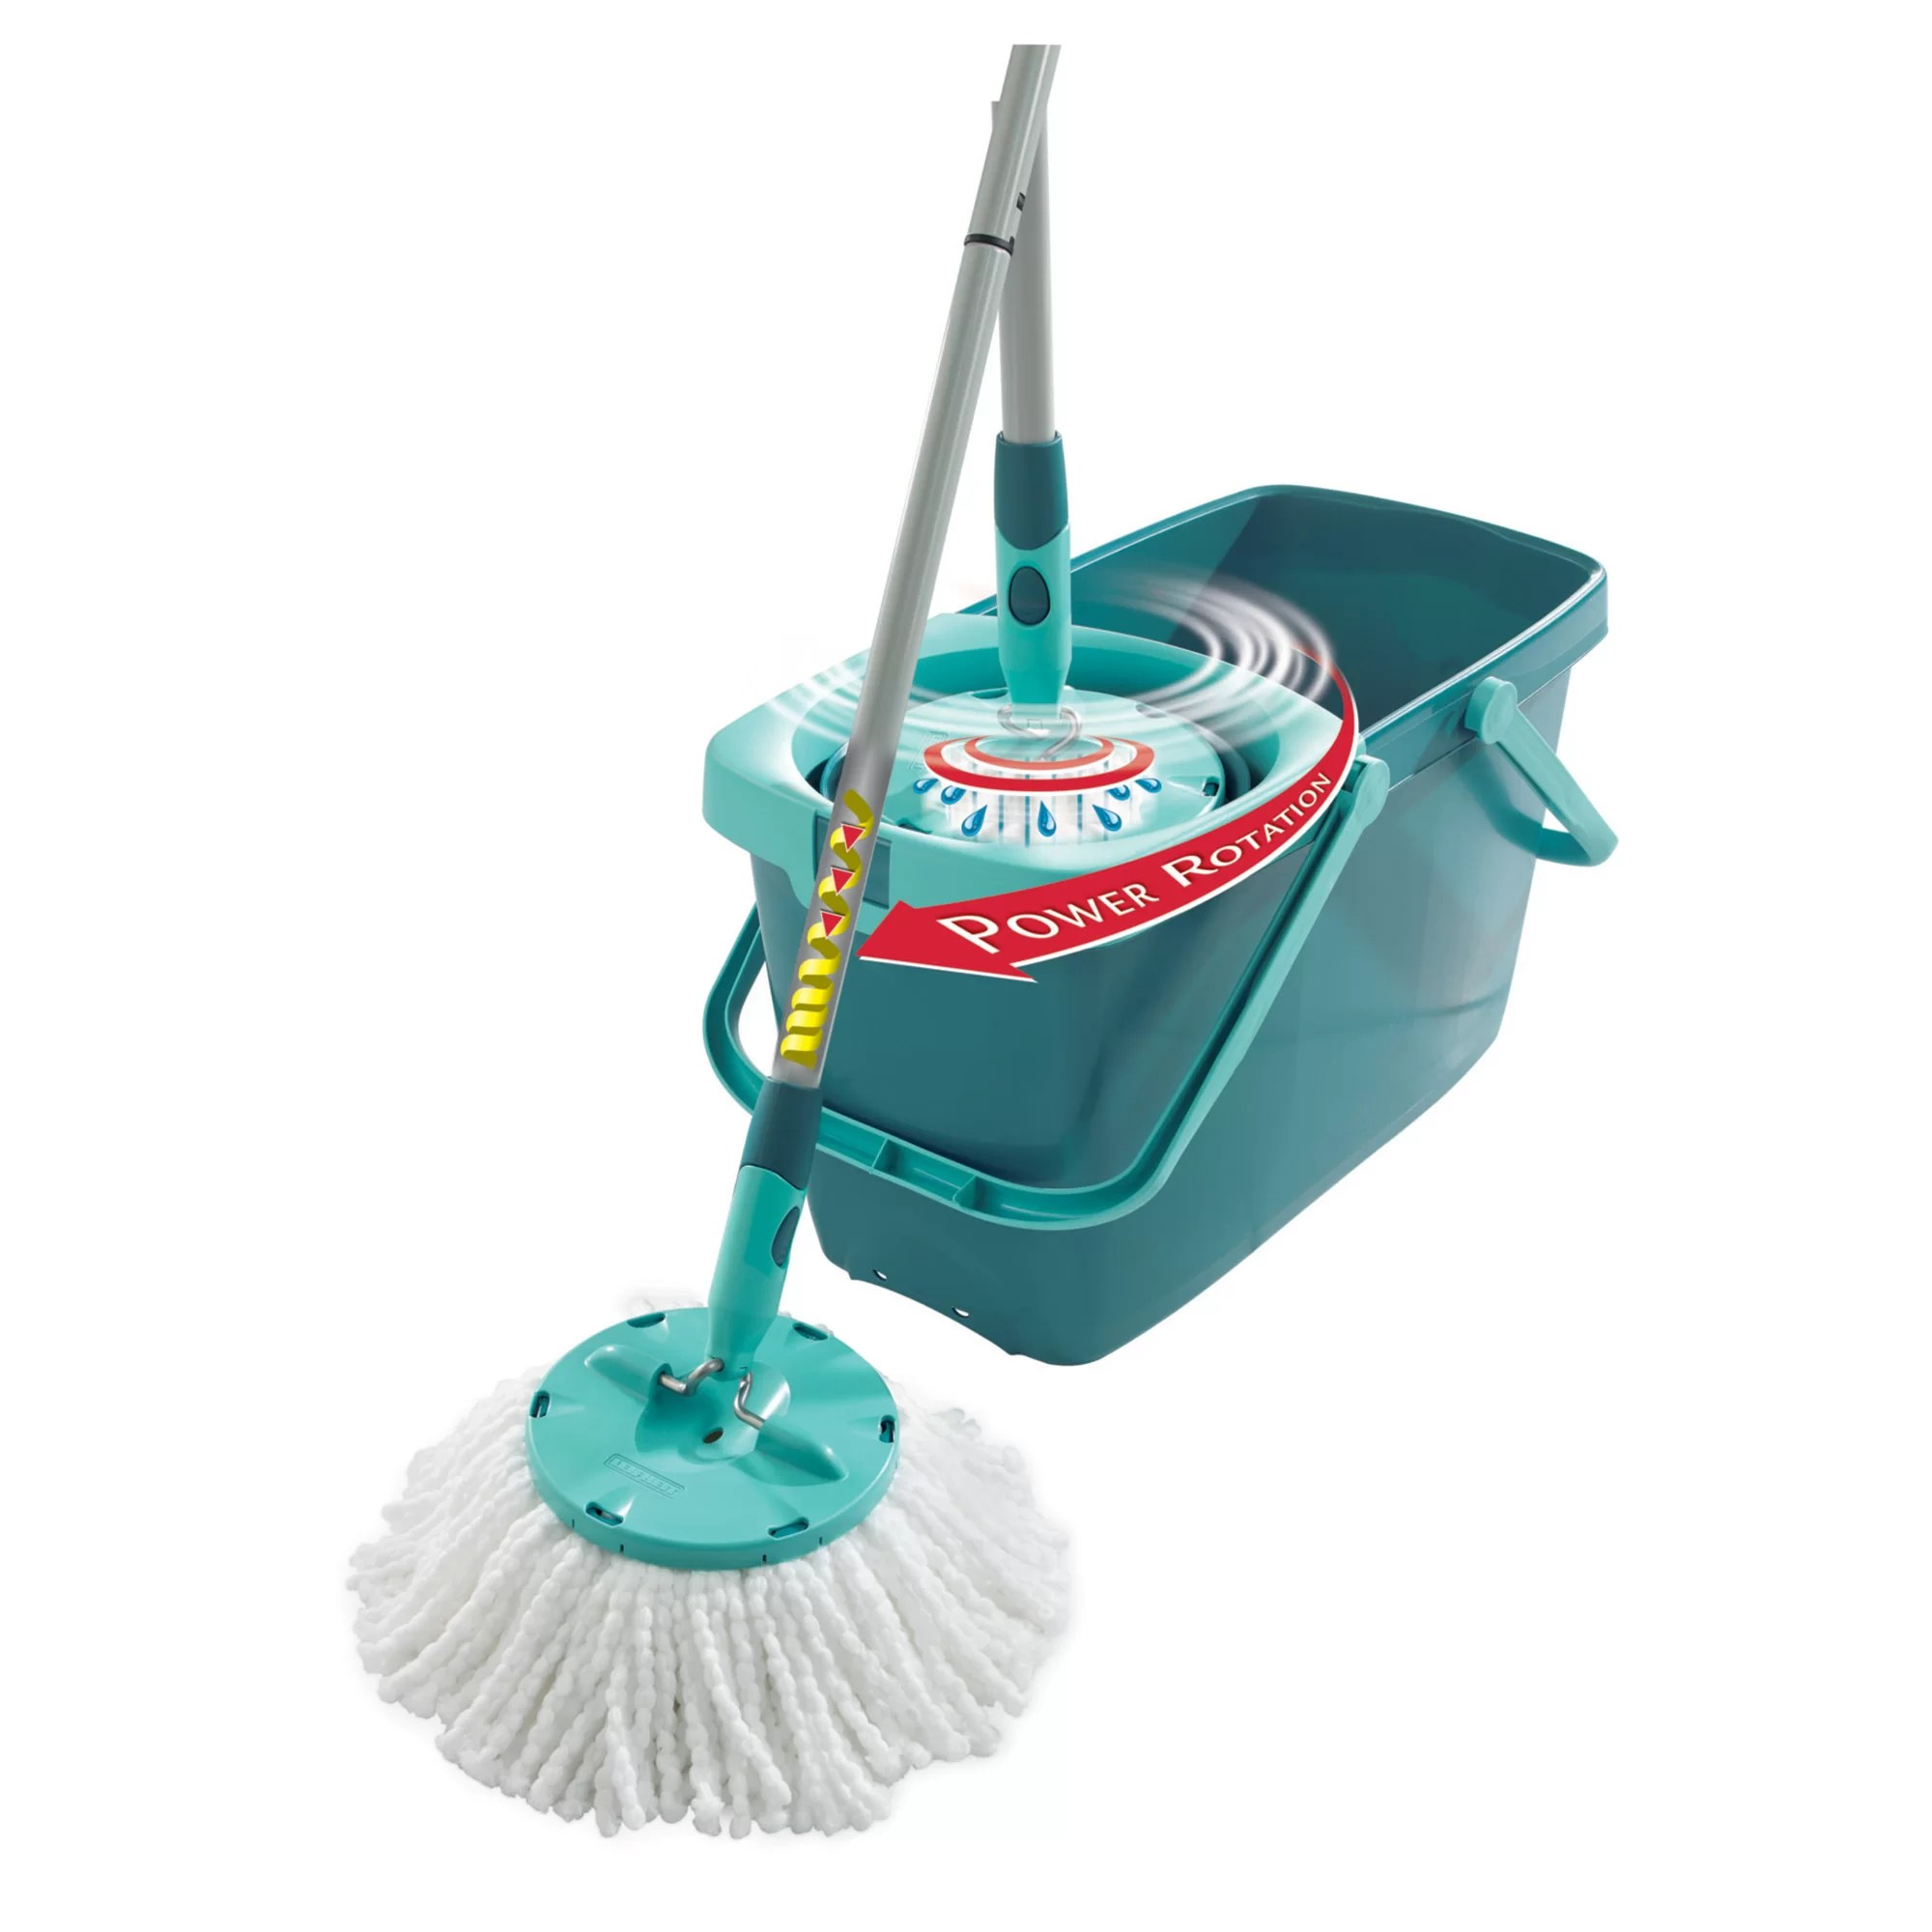 Leifheit Clean Twist Mop Leifheit Clean Twist Mop Set With Mop And Spin Bucket